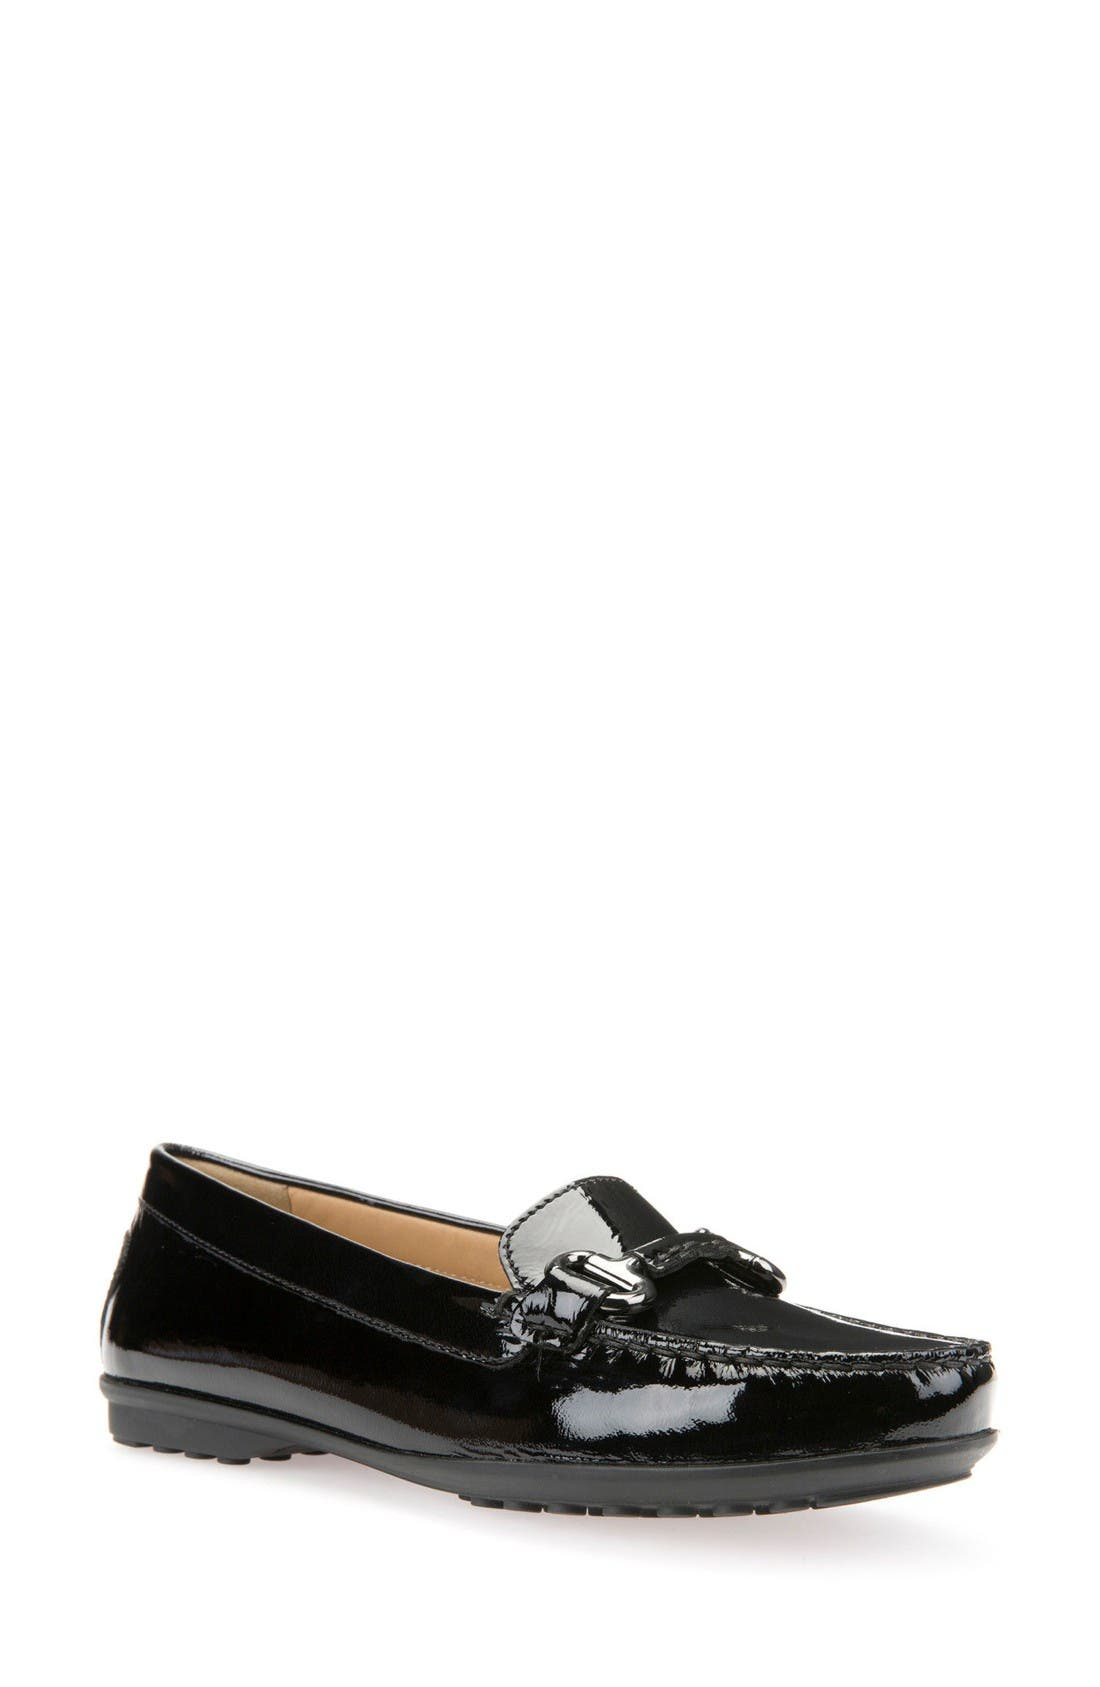 GEOX Elidia Bit Water Resistant Loafer